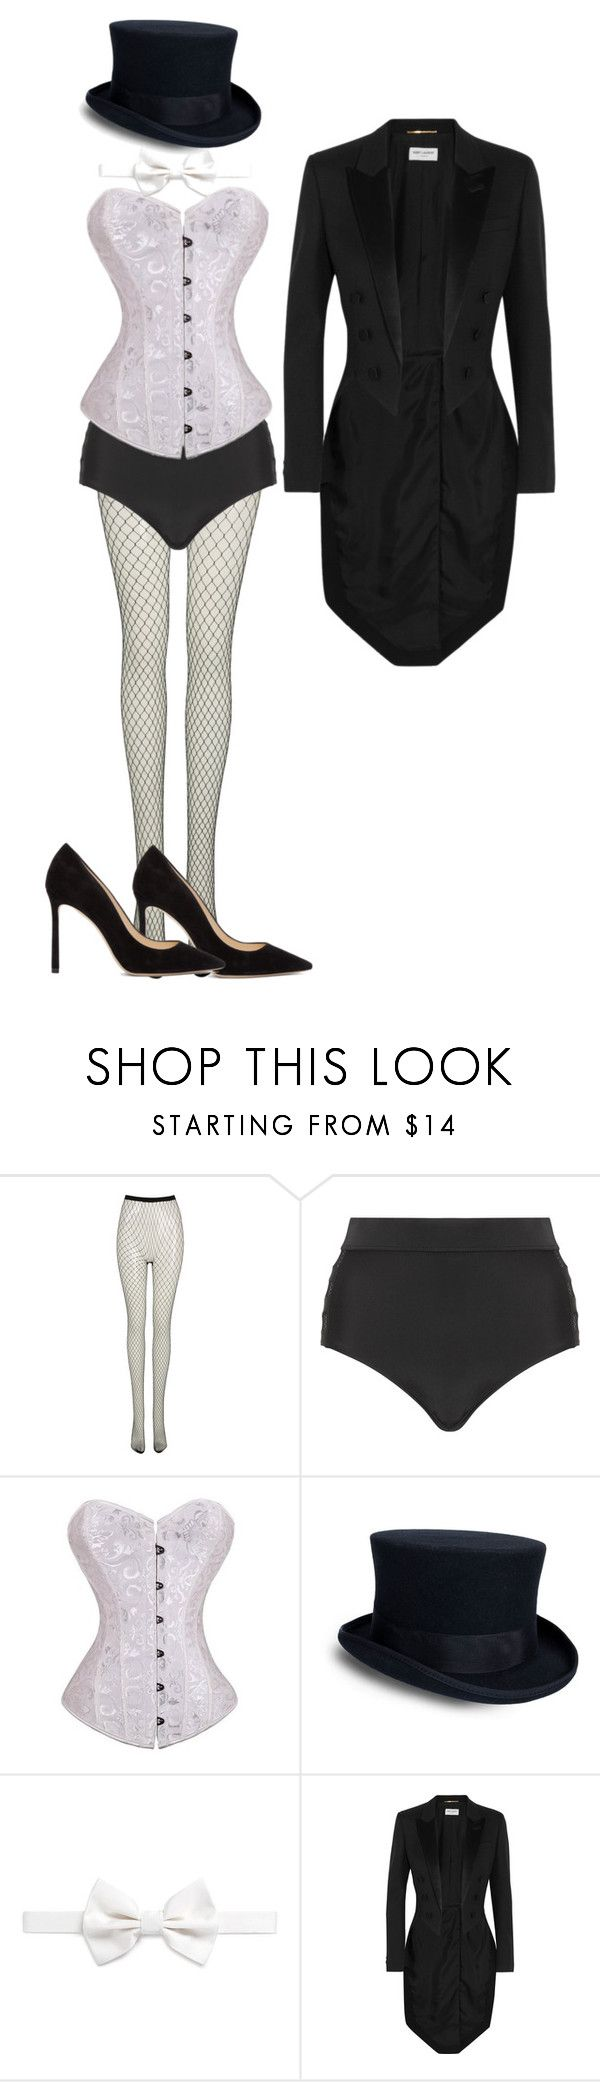 """zatanna cosplay"" by klhowe ❤ liked on Polyvore featuring Frontrow Limited, Cactus, Armani Collezioni, Yves Saint Laurent and Jimmy Choo"